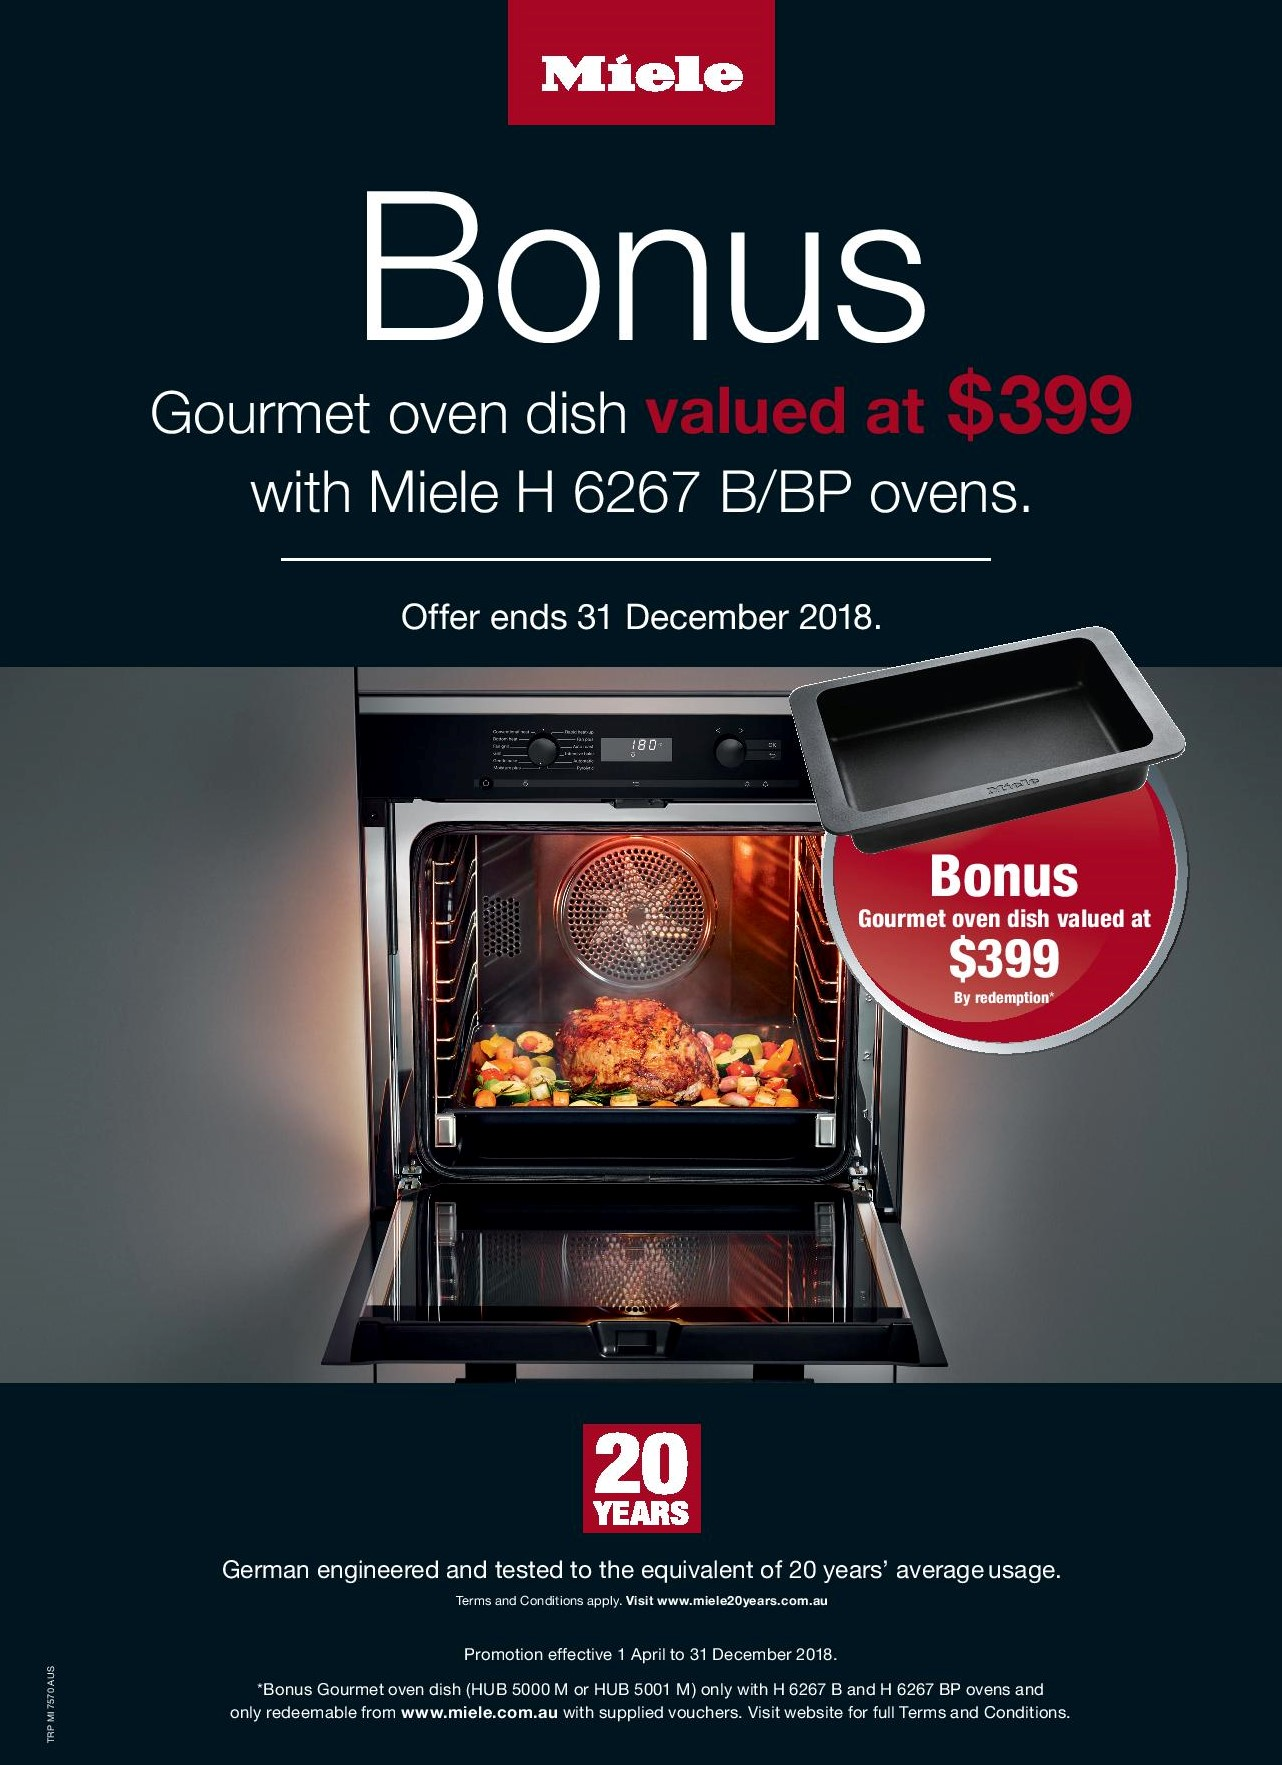 Gourmet Oven Dish Promotion